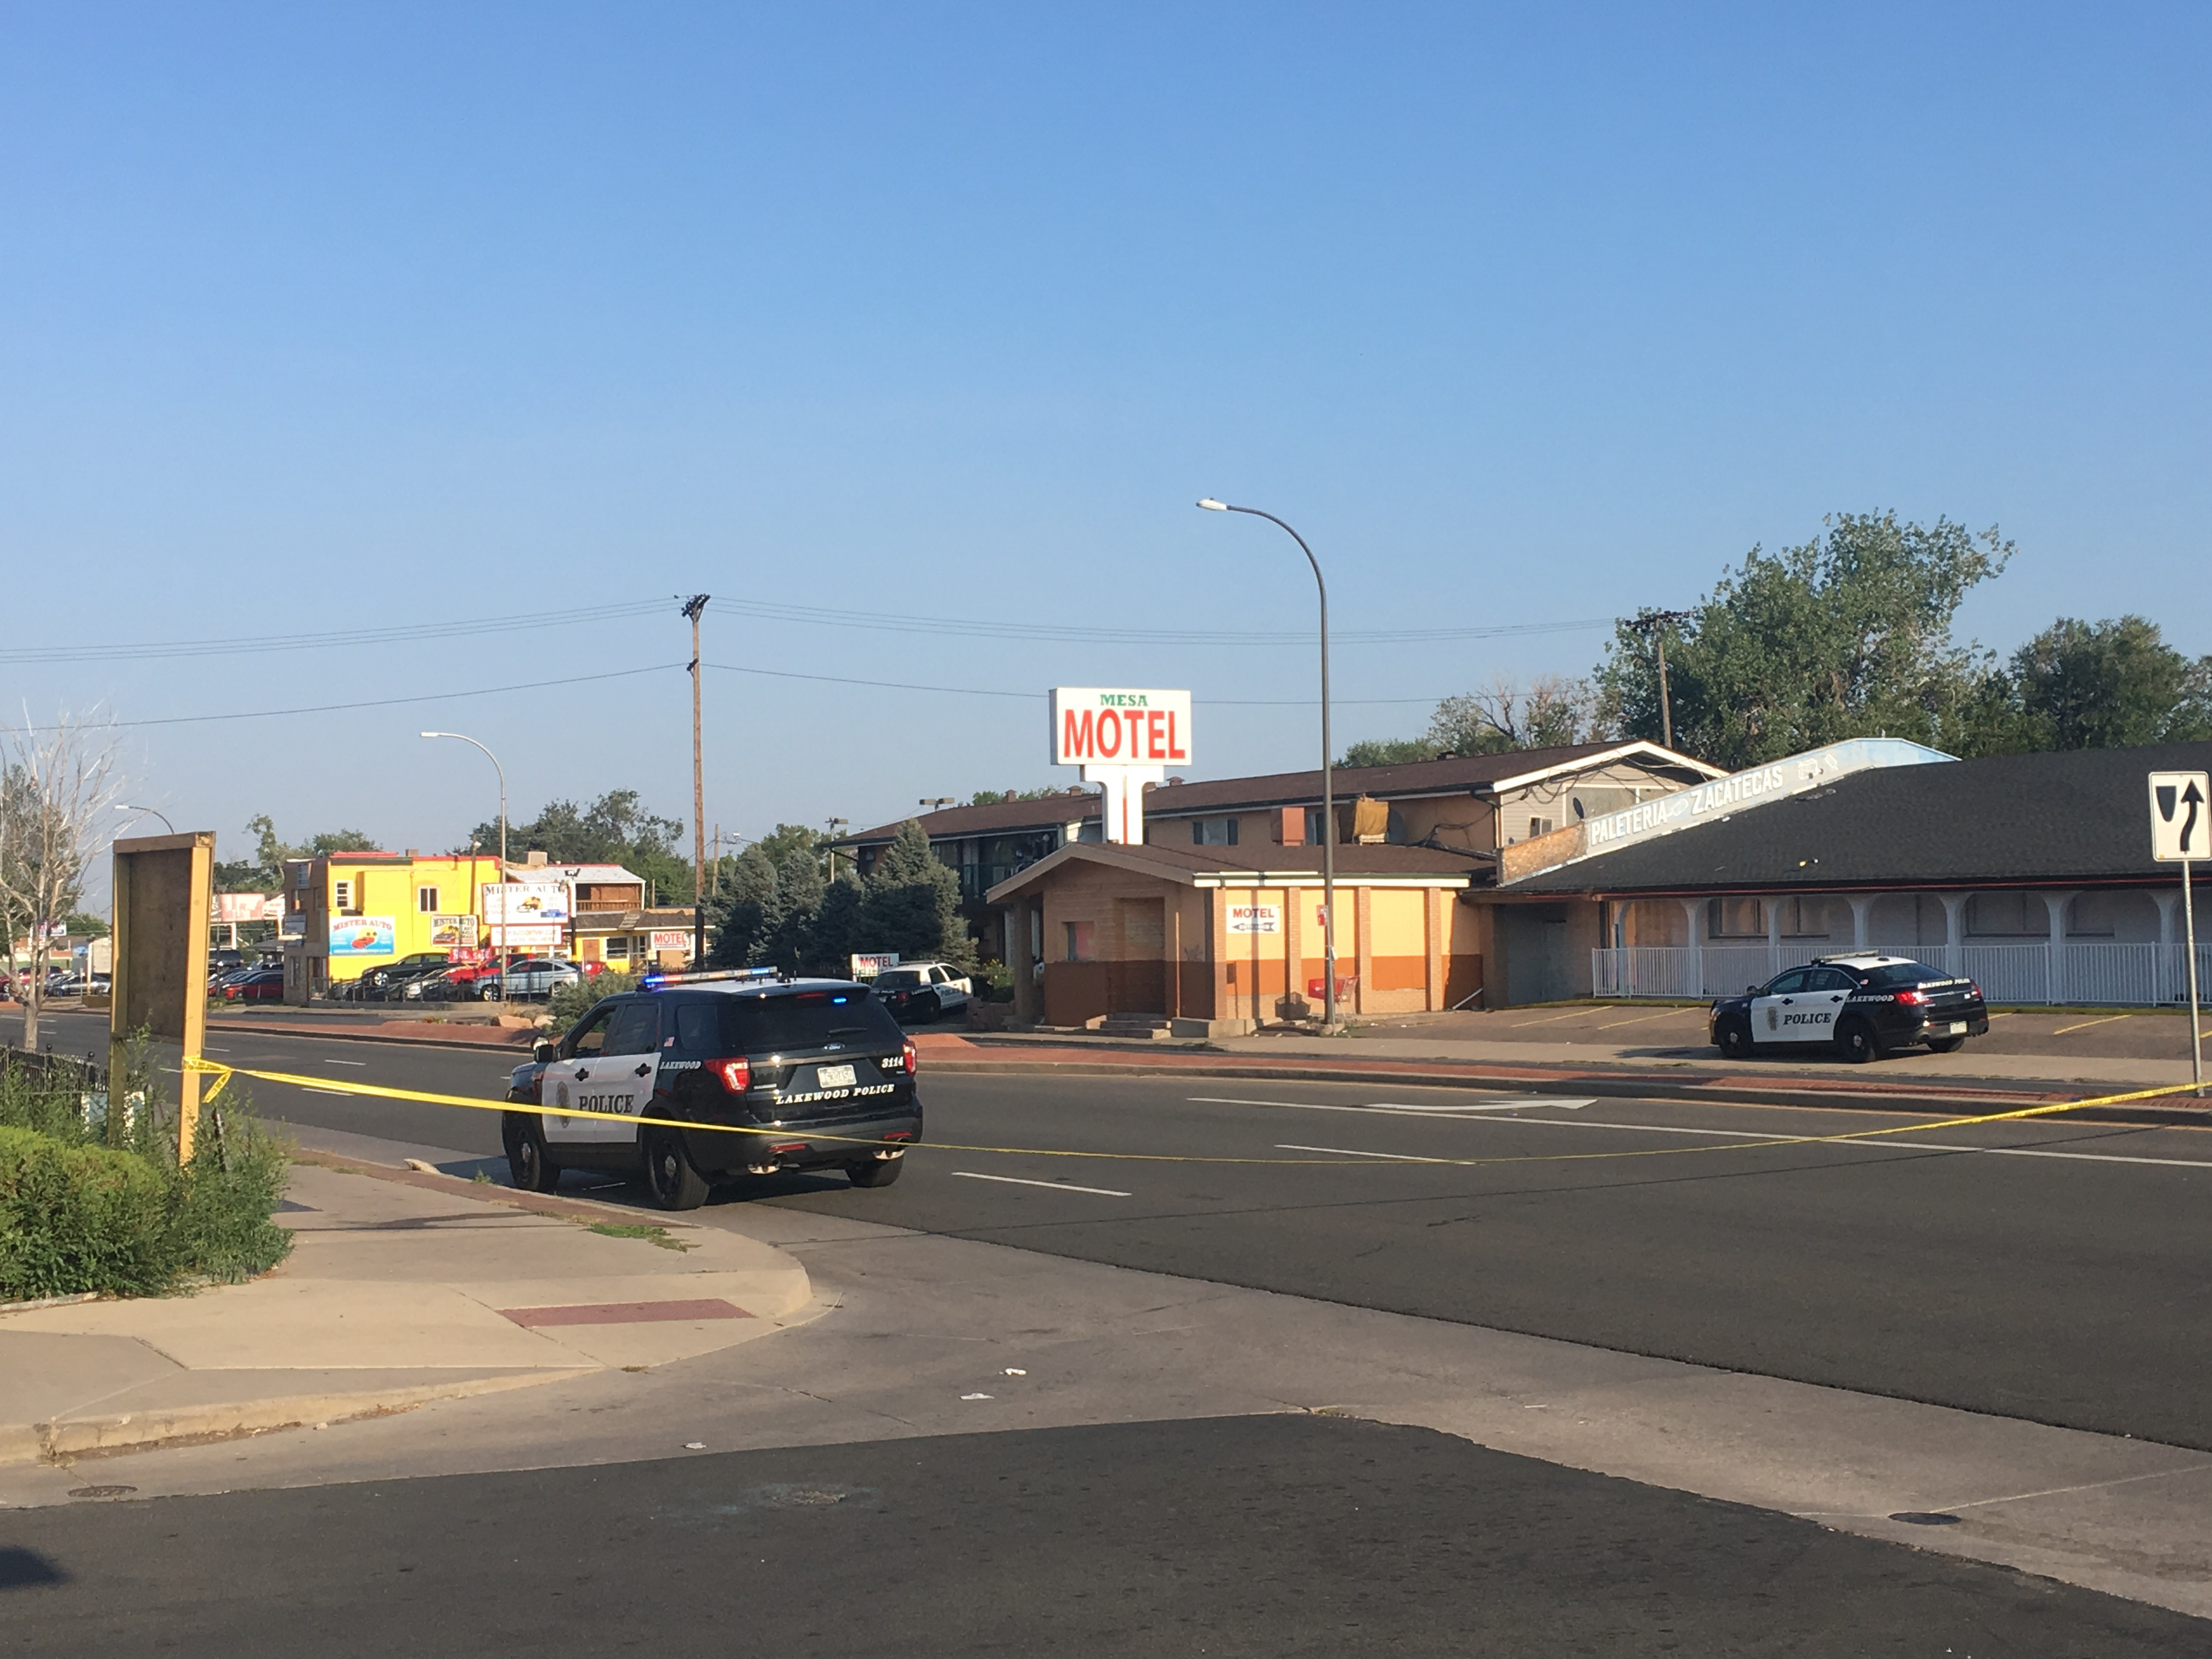 Man Robs Motel Barricades Self In Another Motel And